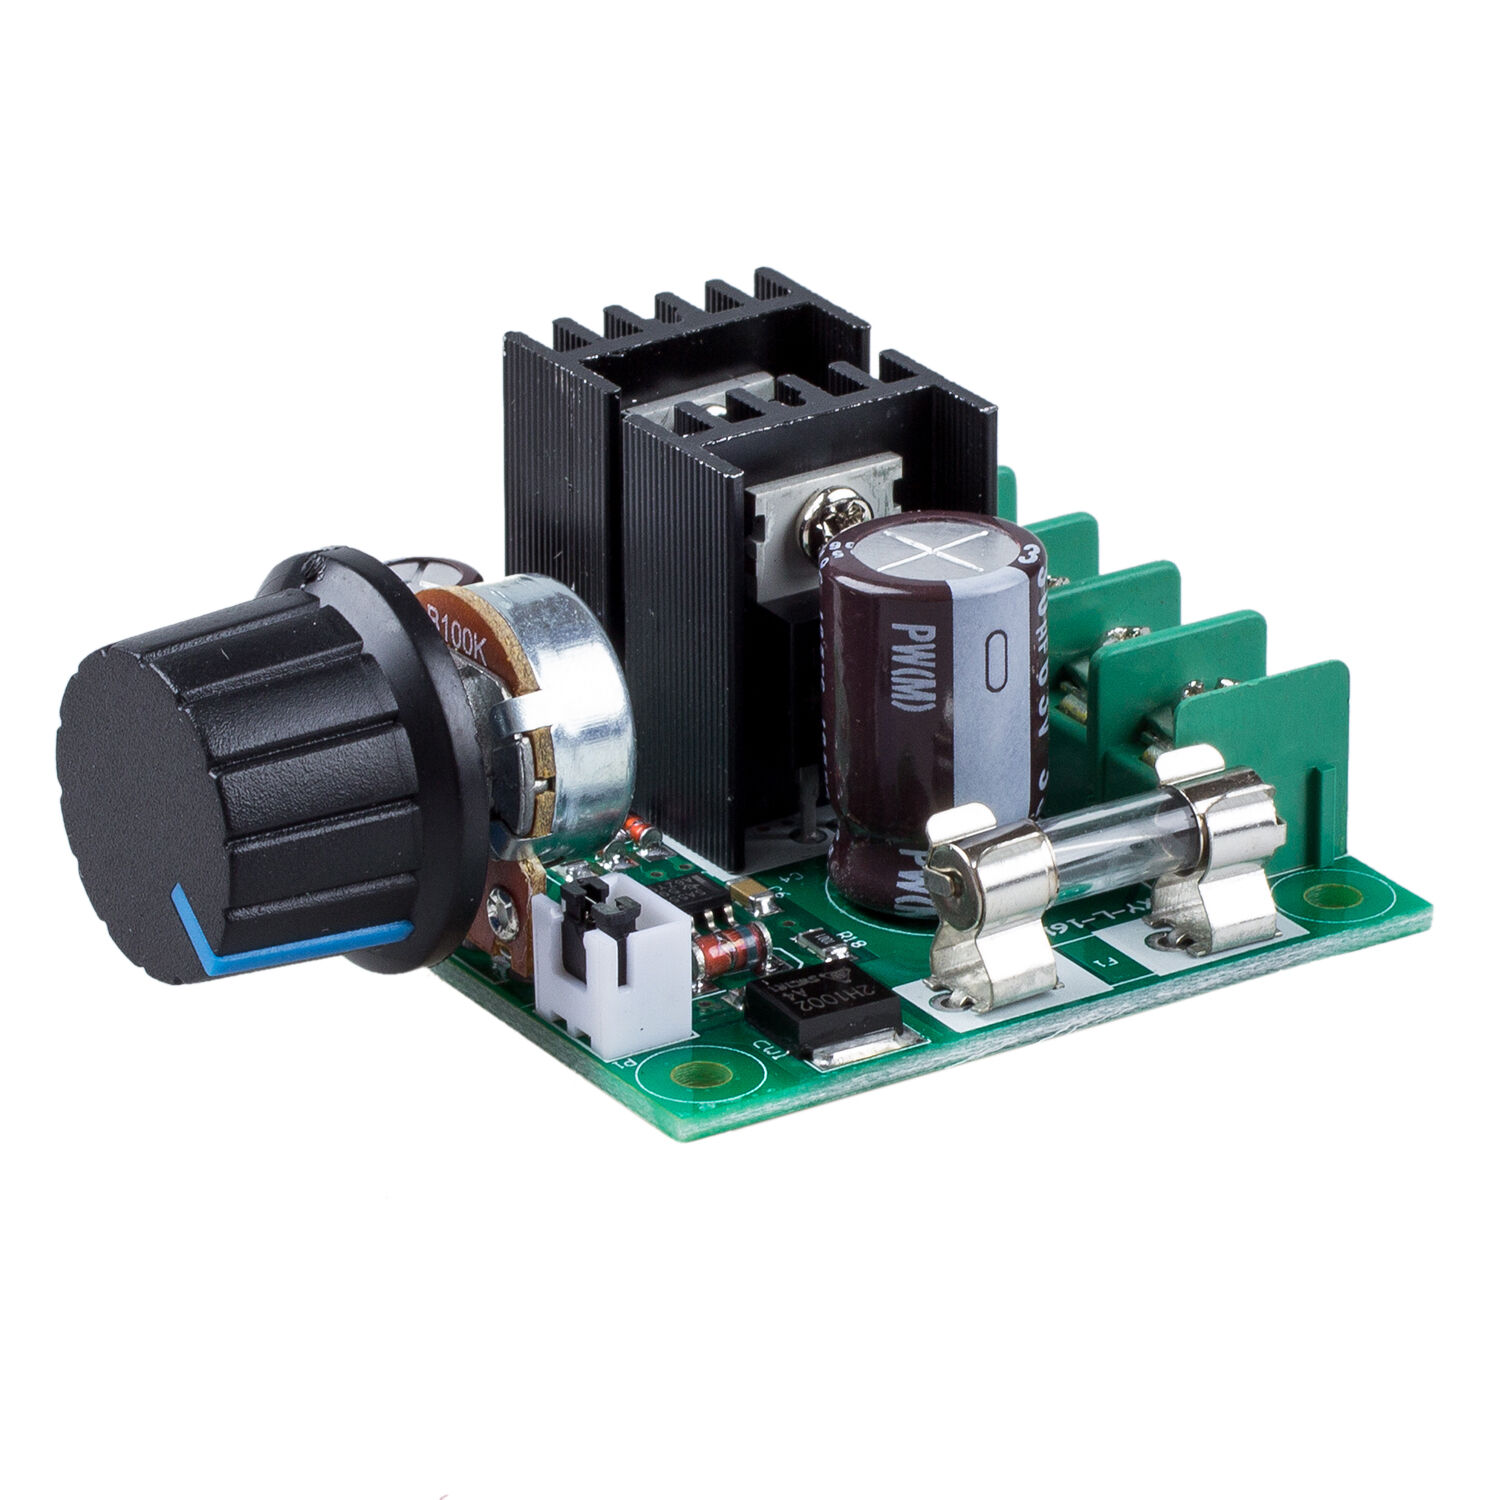 12v 40v 10a Pwm Dc Motor Speed Controller With Knob Lw Behind Selecting Frequency For Control Of A Gallery Image